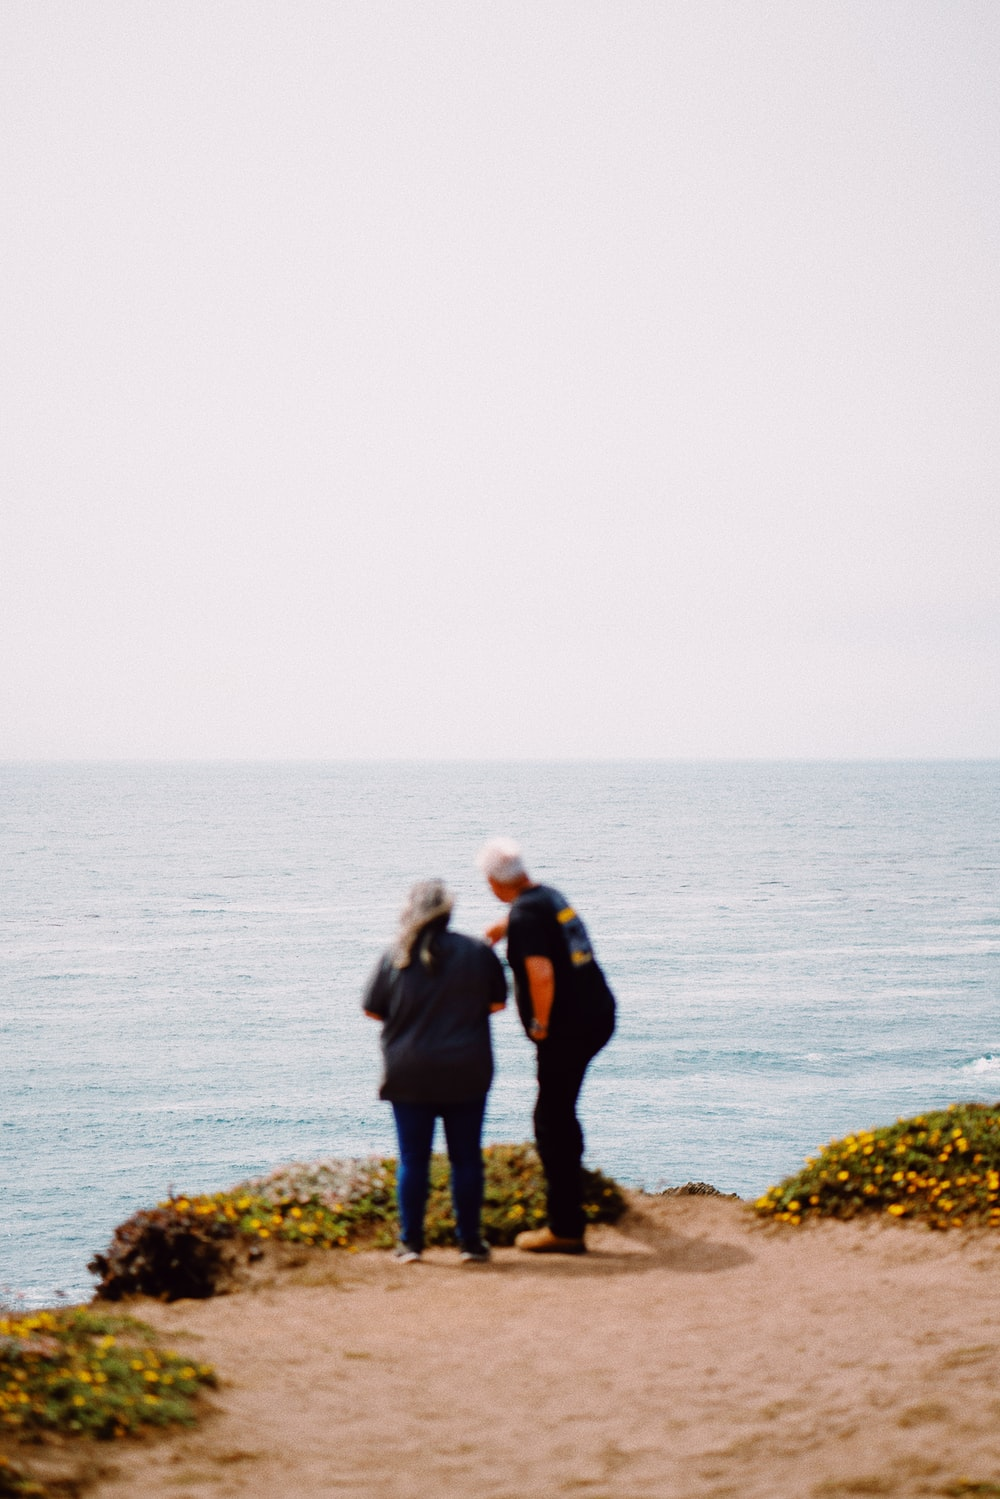 man and woman standing on rock near body of water during daytime